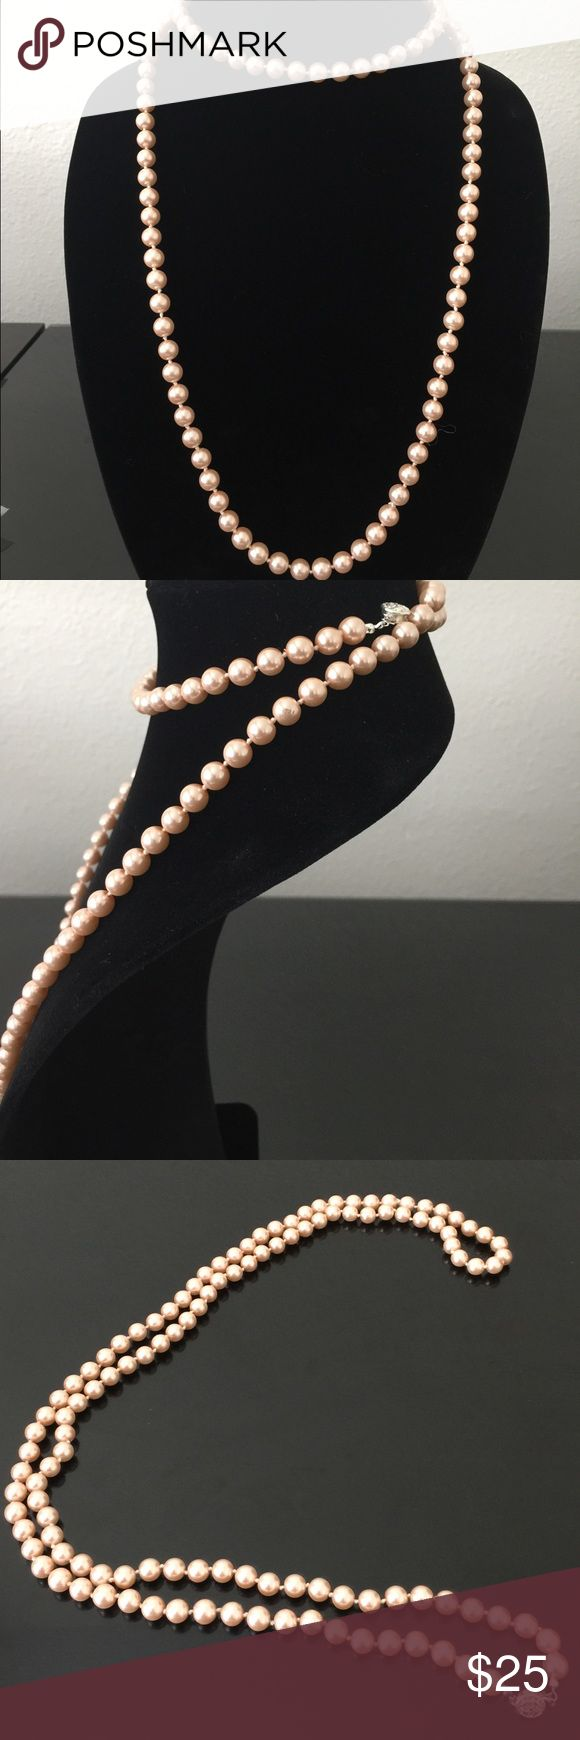 """A gorgeous gleaming strand of imitation necklace. A gorgeous gleaming strand of pink imitation pearl take you from workweek to the weekend without missing a beat, designed with silver tone mixed metal. Approx length 42"""". Charter Club Jewelry Necklaces"""